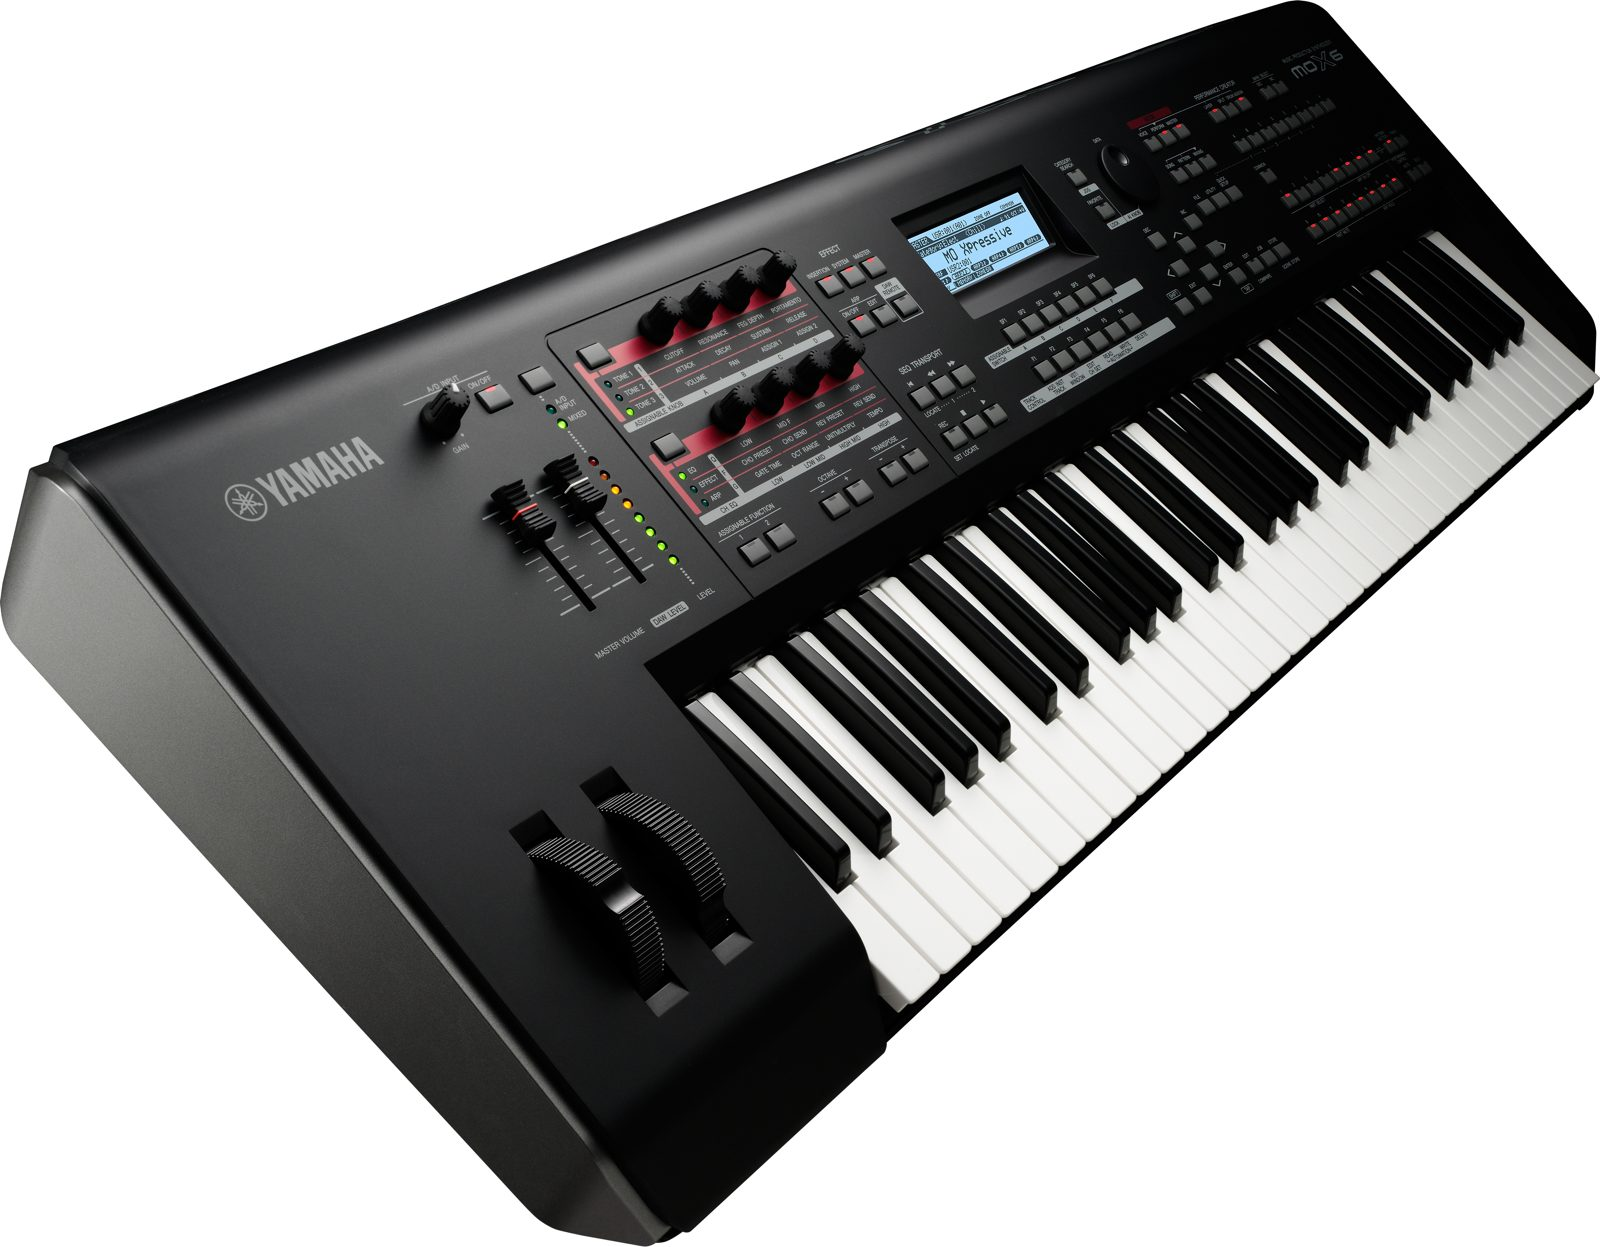 yamaha 39 s mox recession friendly more portable motif keyboards computer workflows cdm create. Black Bedroom Furniture Sets. Home Design Ideas